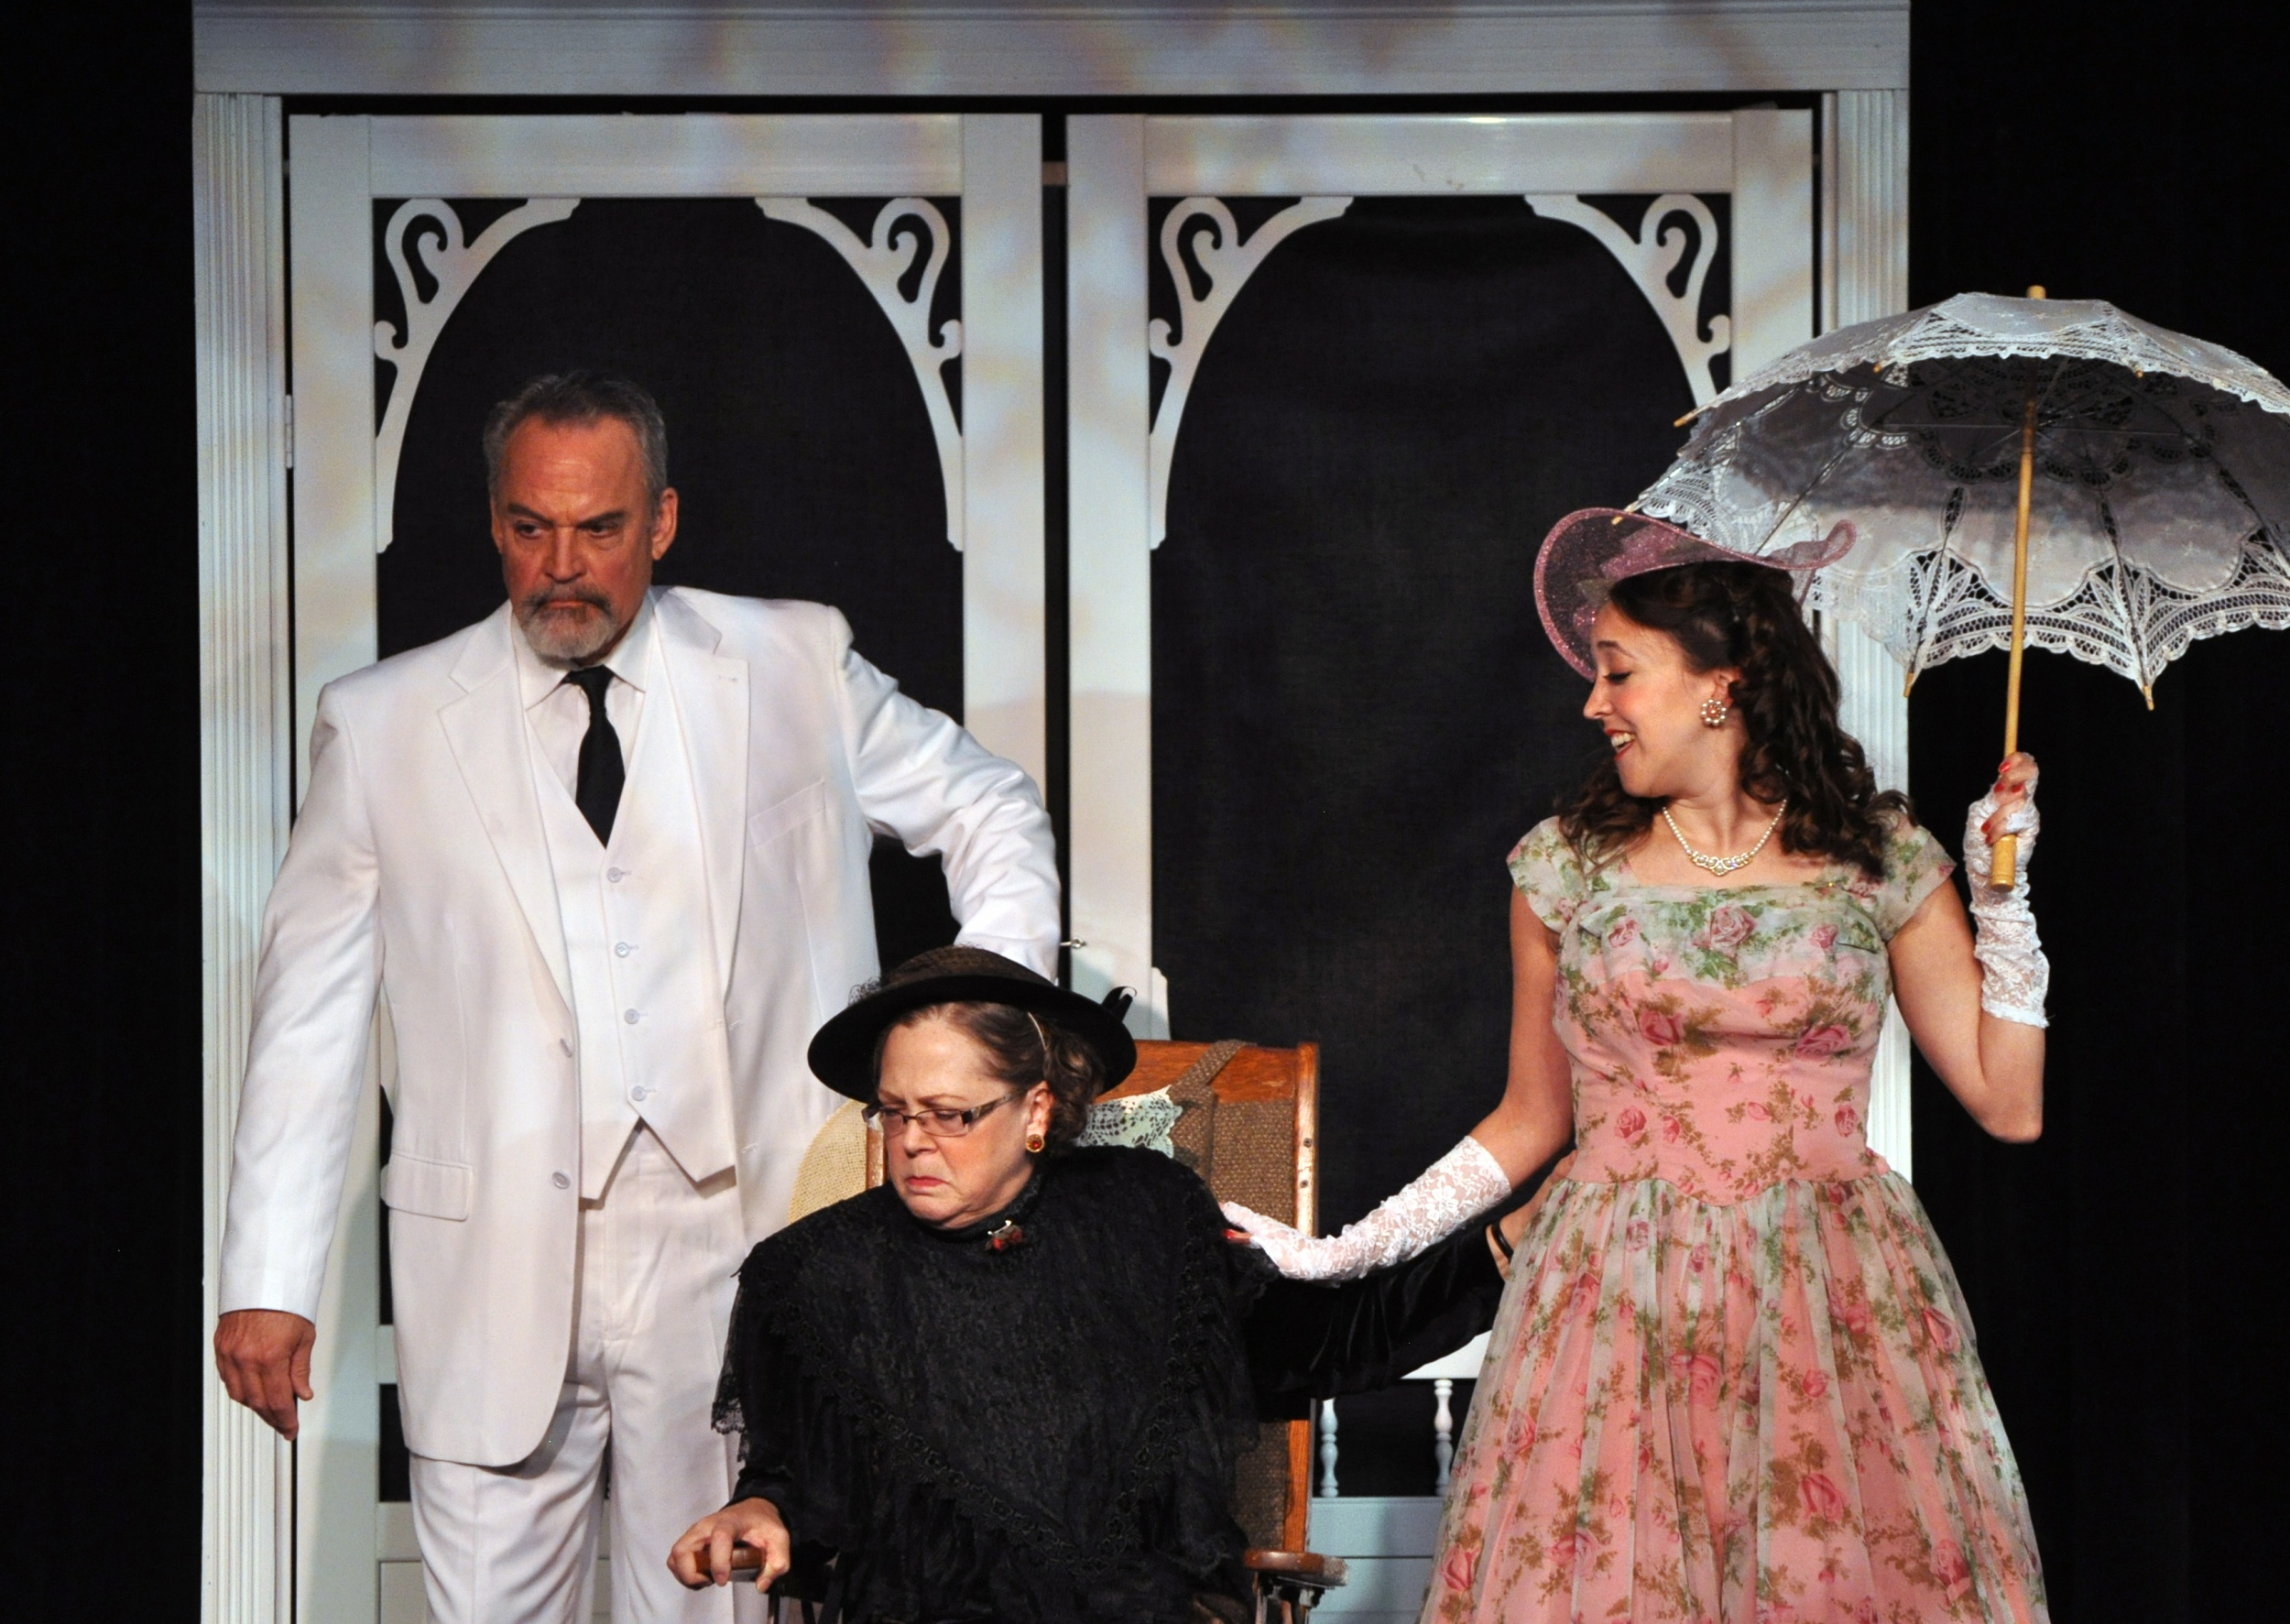 Patrick David, Smitty Connolly and Andra Whitt in the PPF Production of Auntie Mame Photo by Chip Gertzog Providence Players